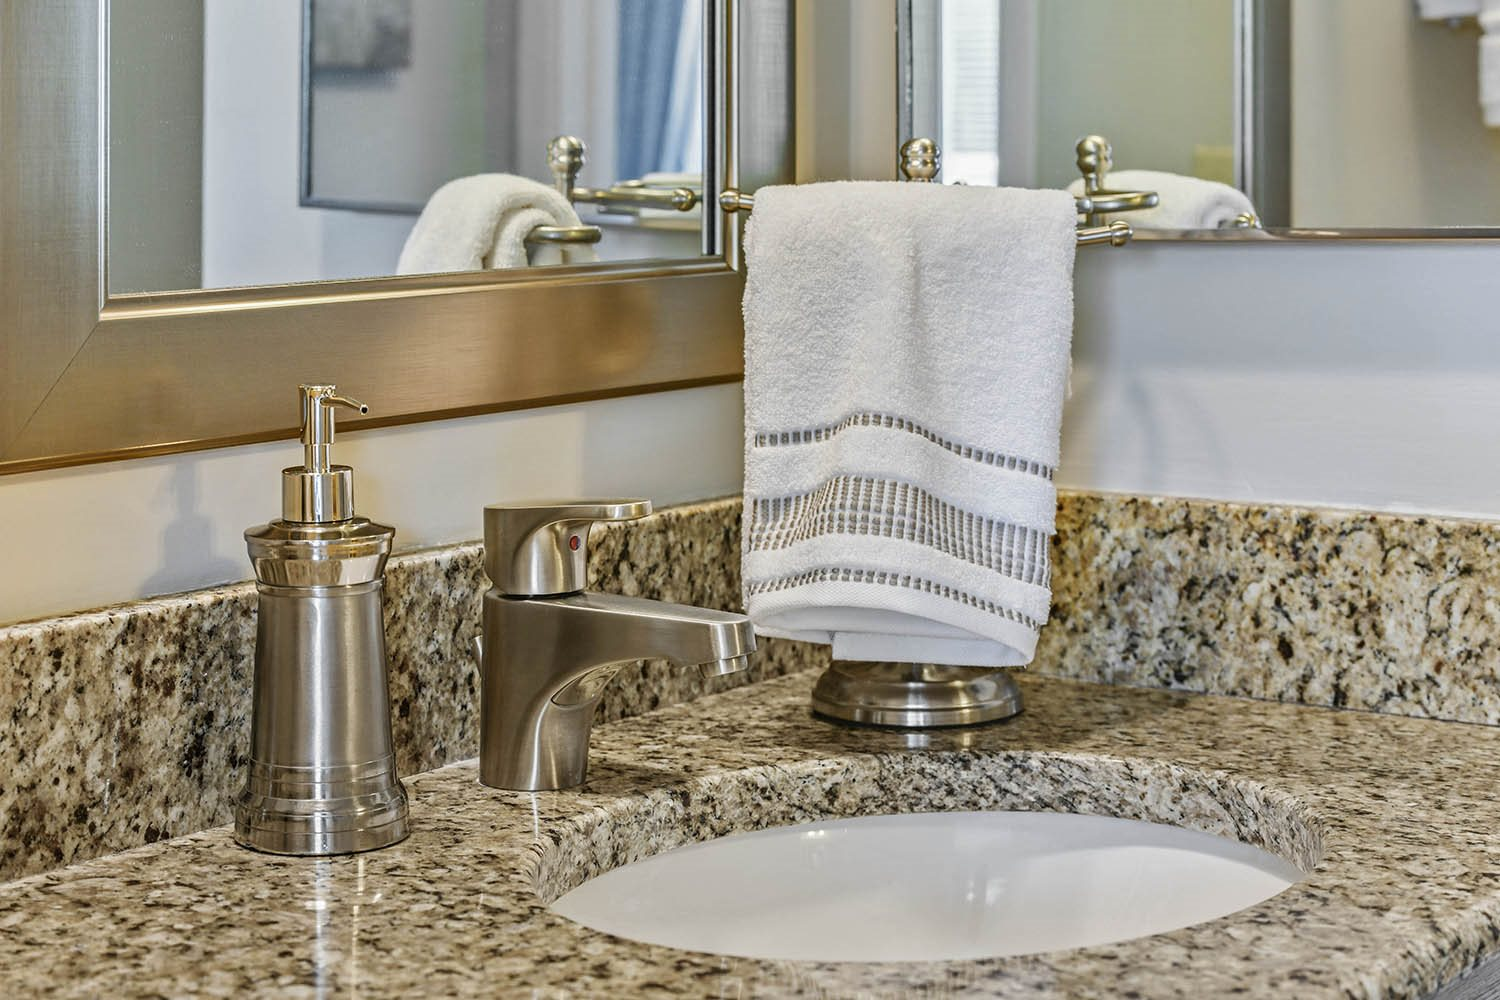 Designer Granite Countertops at Westpark Townhomes, Indianapolis, 46214